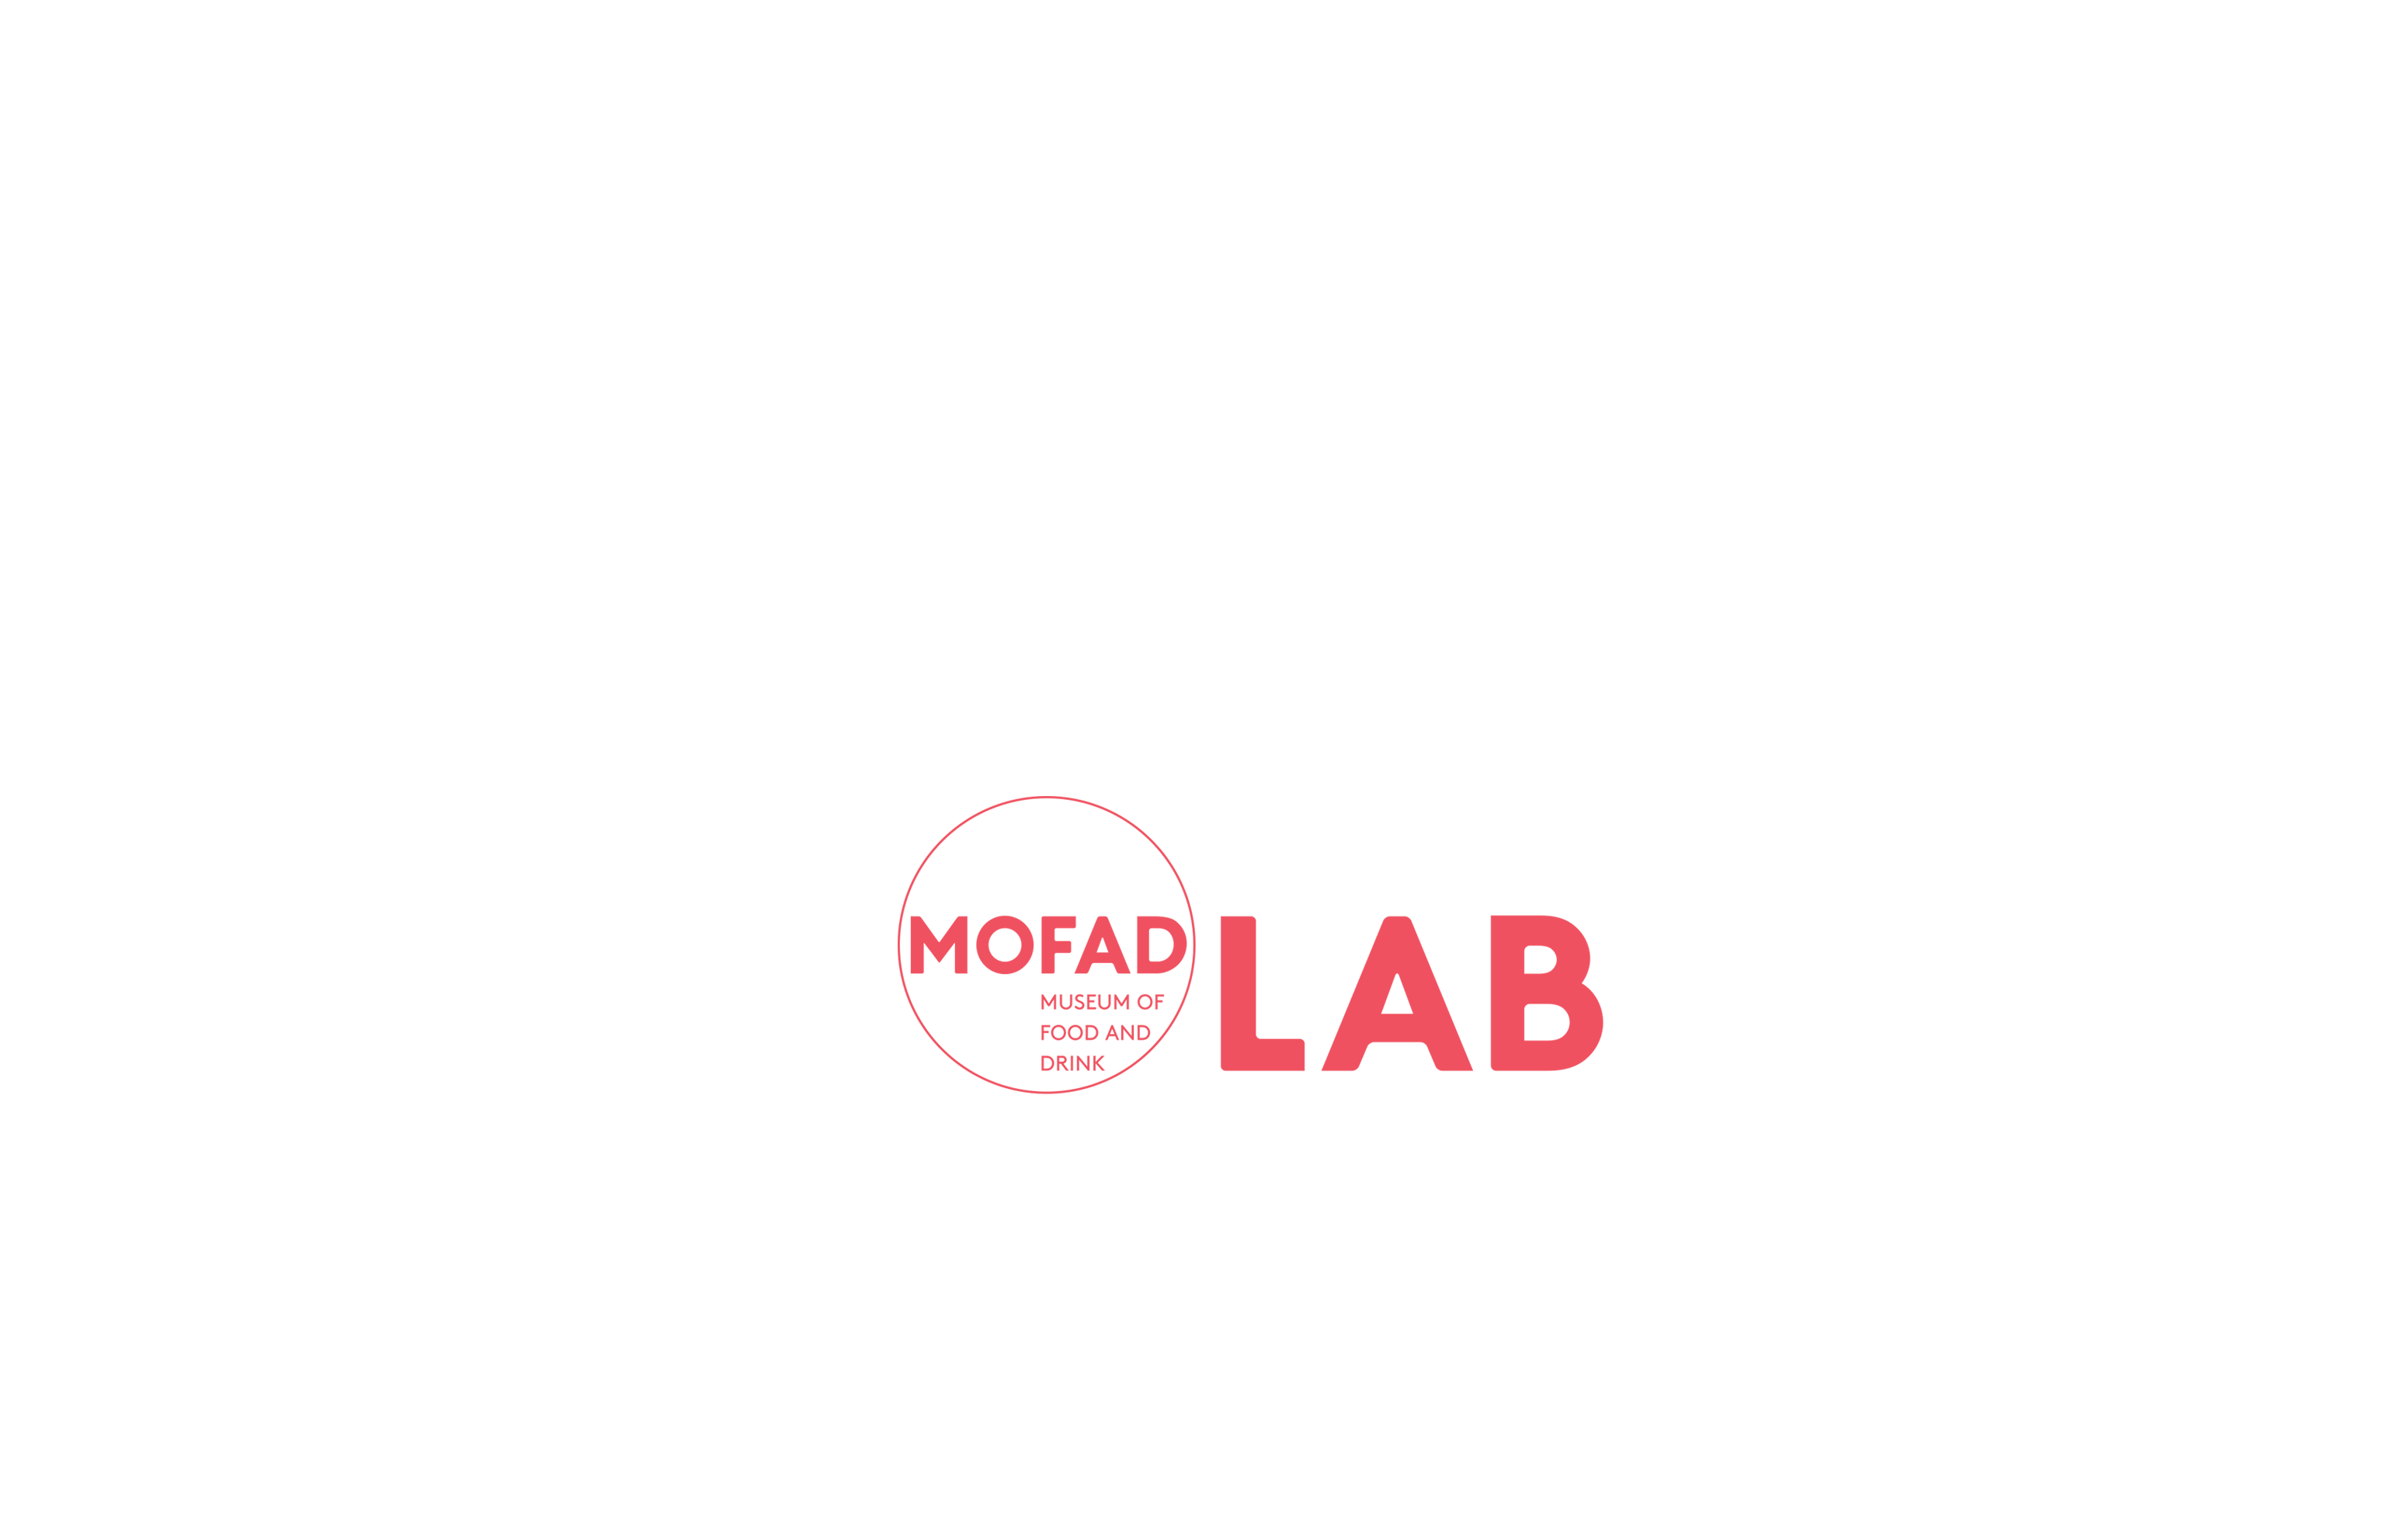 Driven by the Senses 2.0